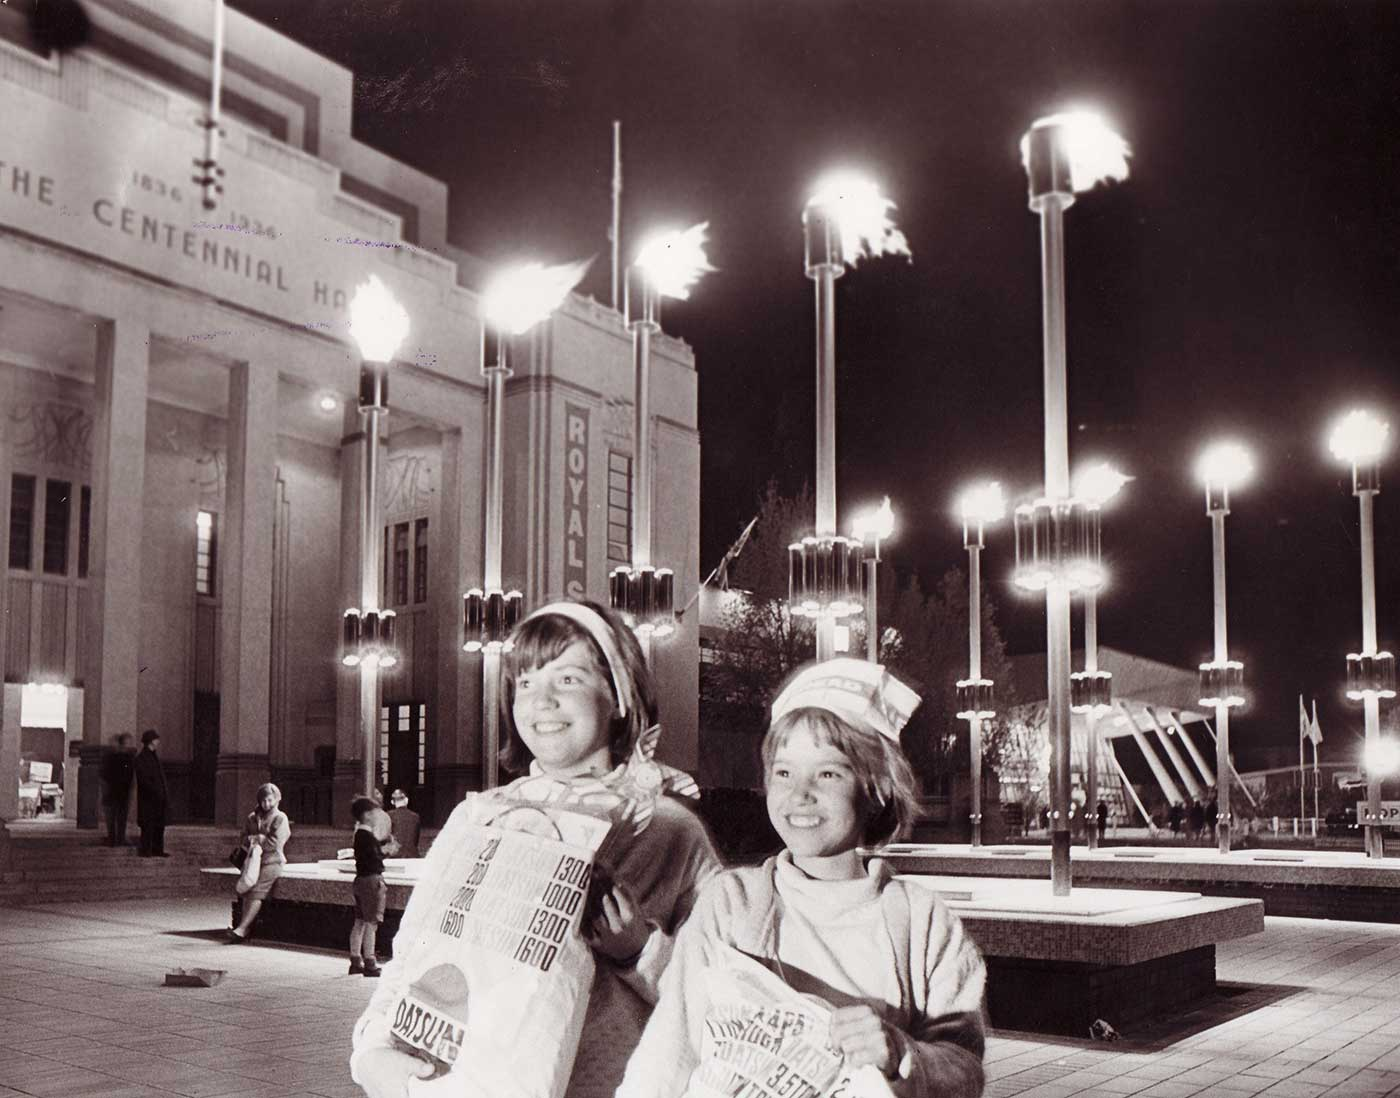 Black and white photo showing two girls posing with show bags outside the Centennial Hall at night. - click to view larger image